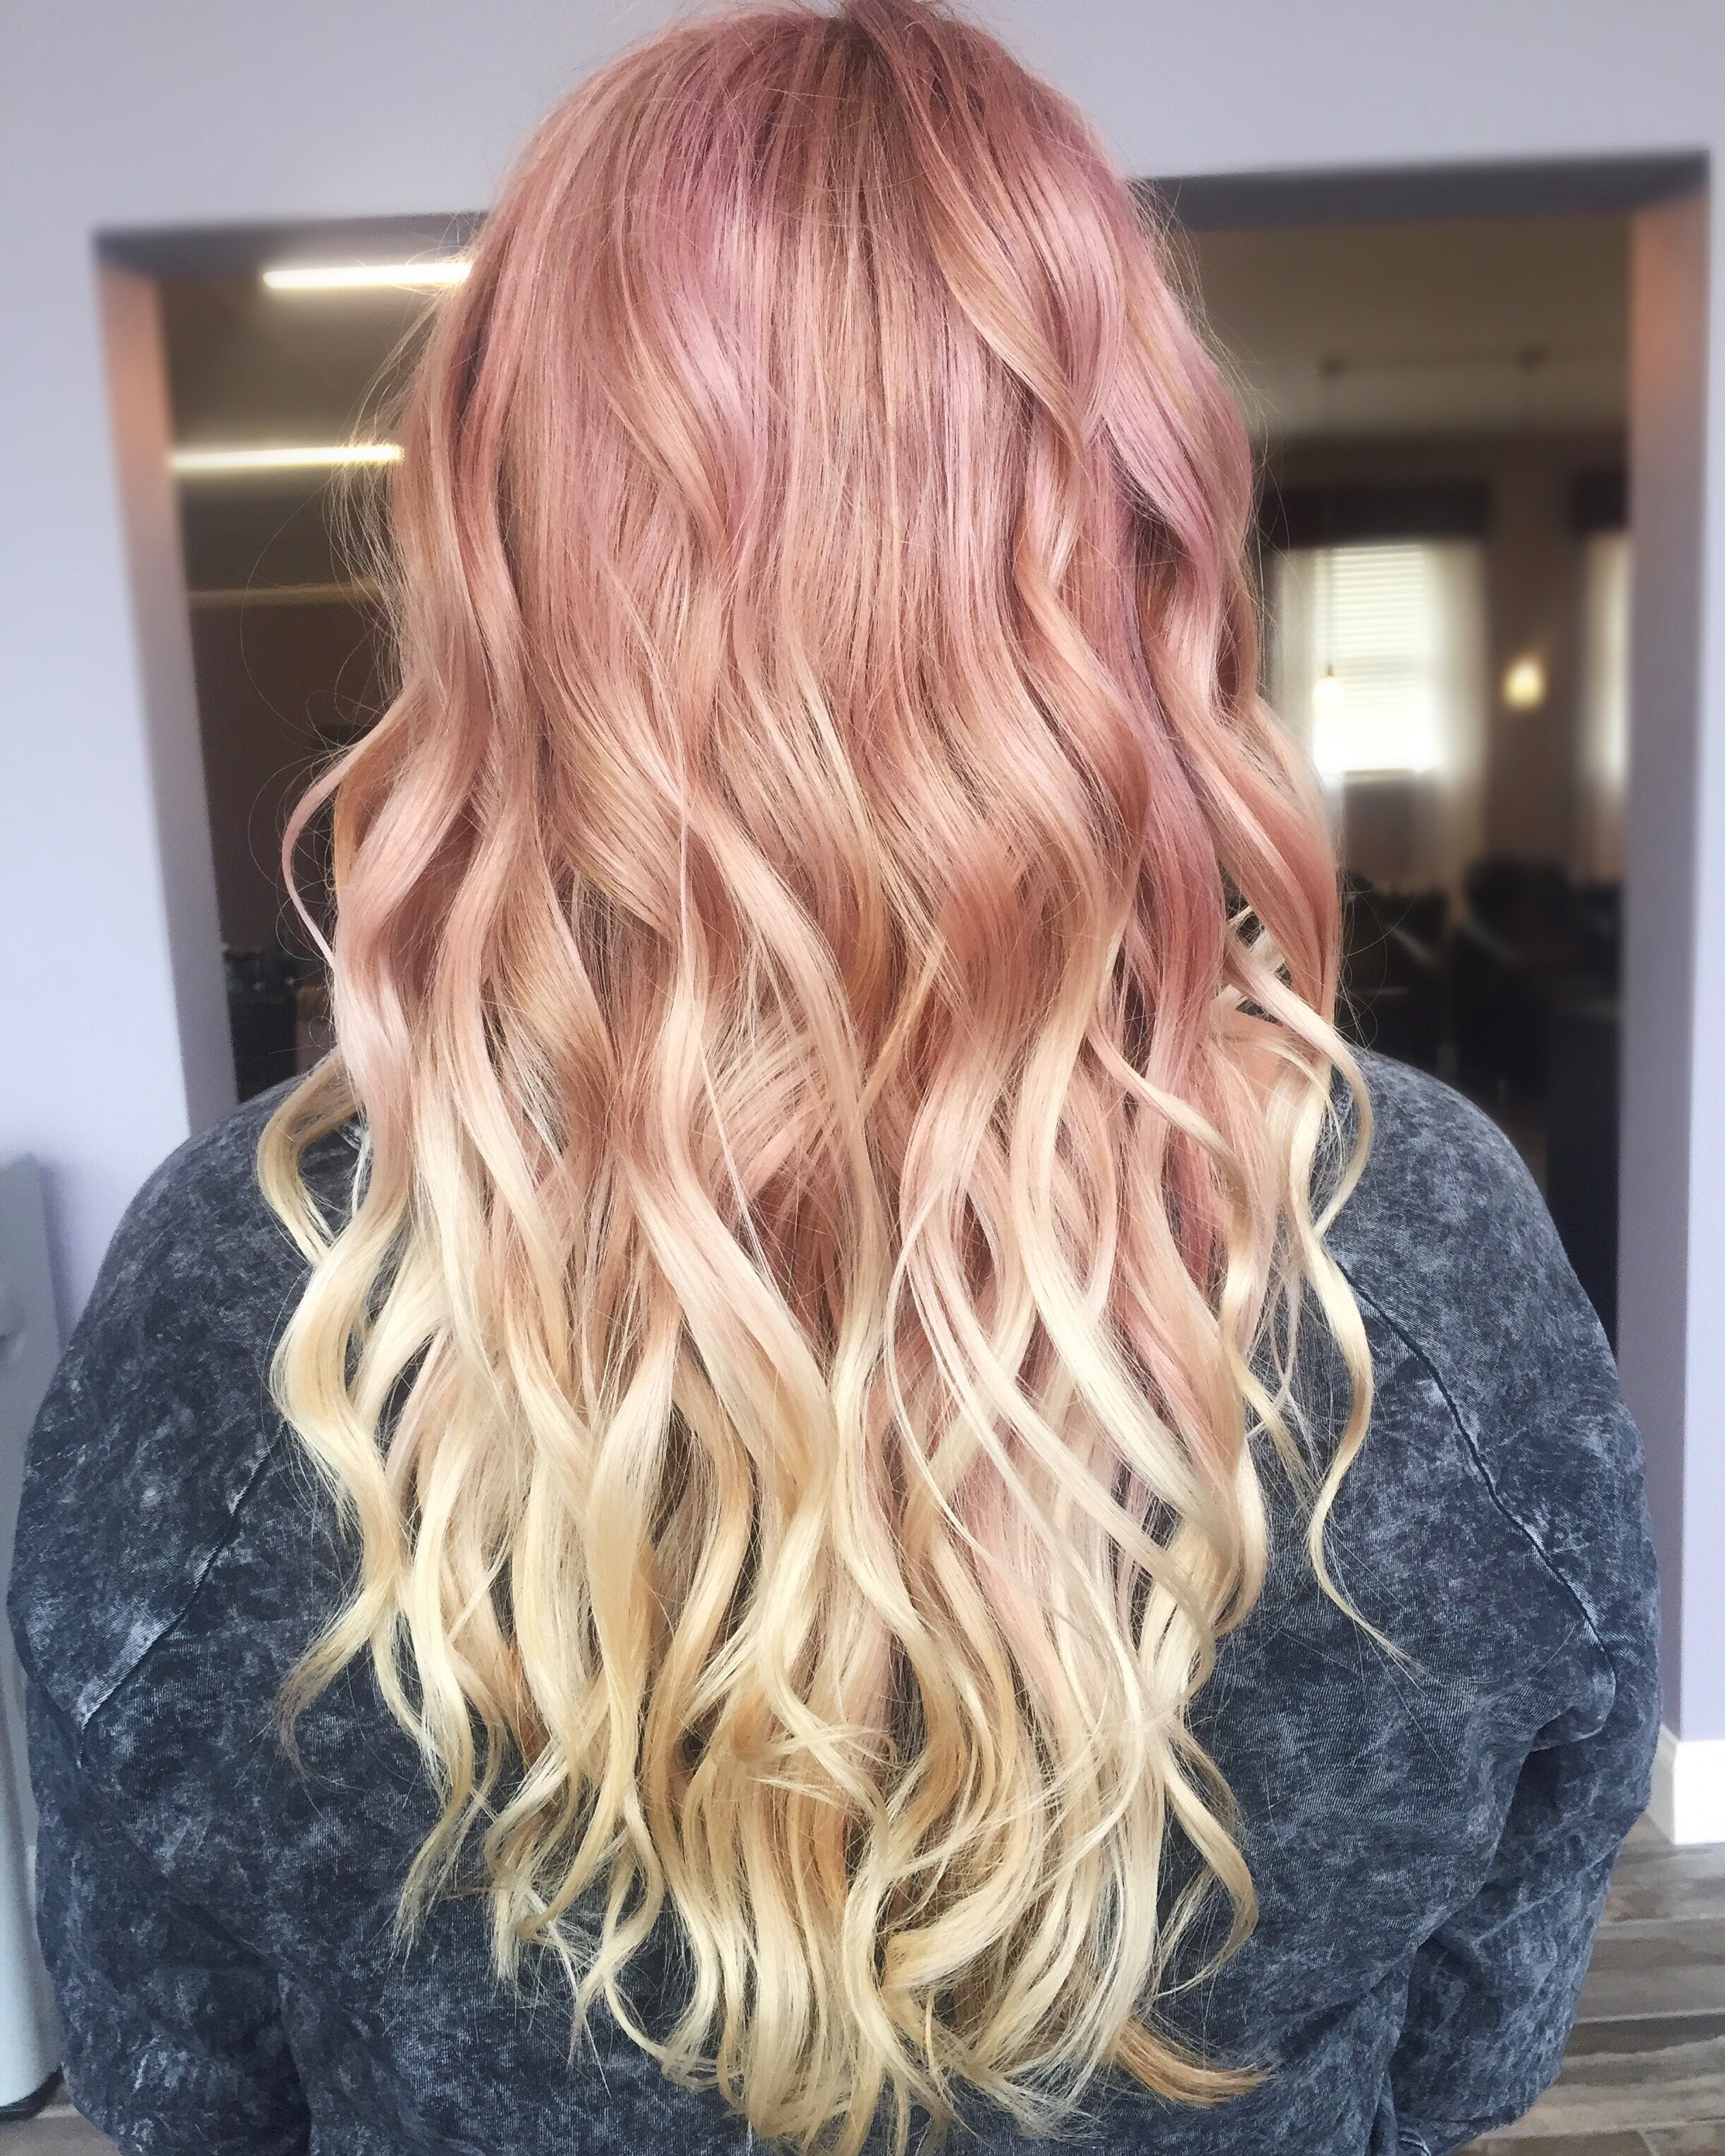 Rose gold to blonde ombre pinteresu backgrounds hair color for mobile hd pics